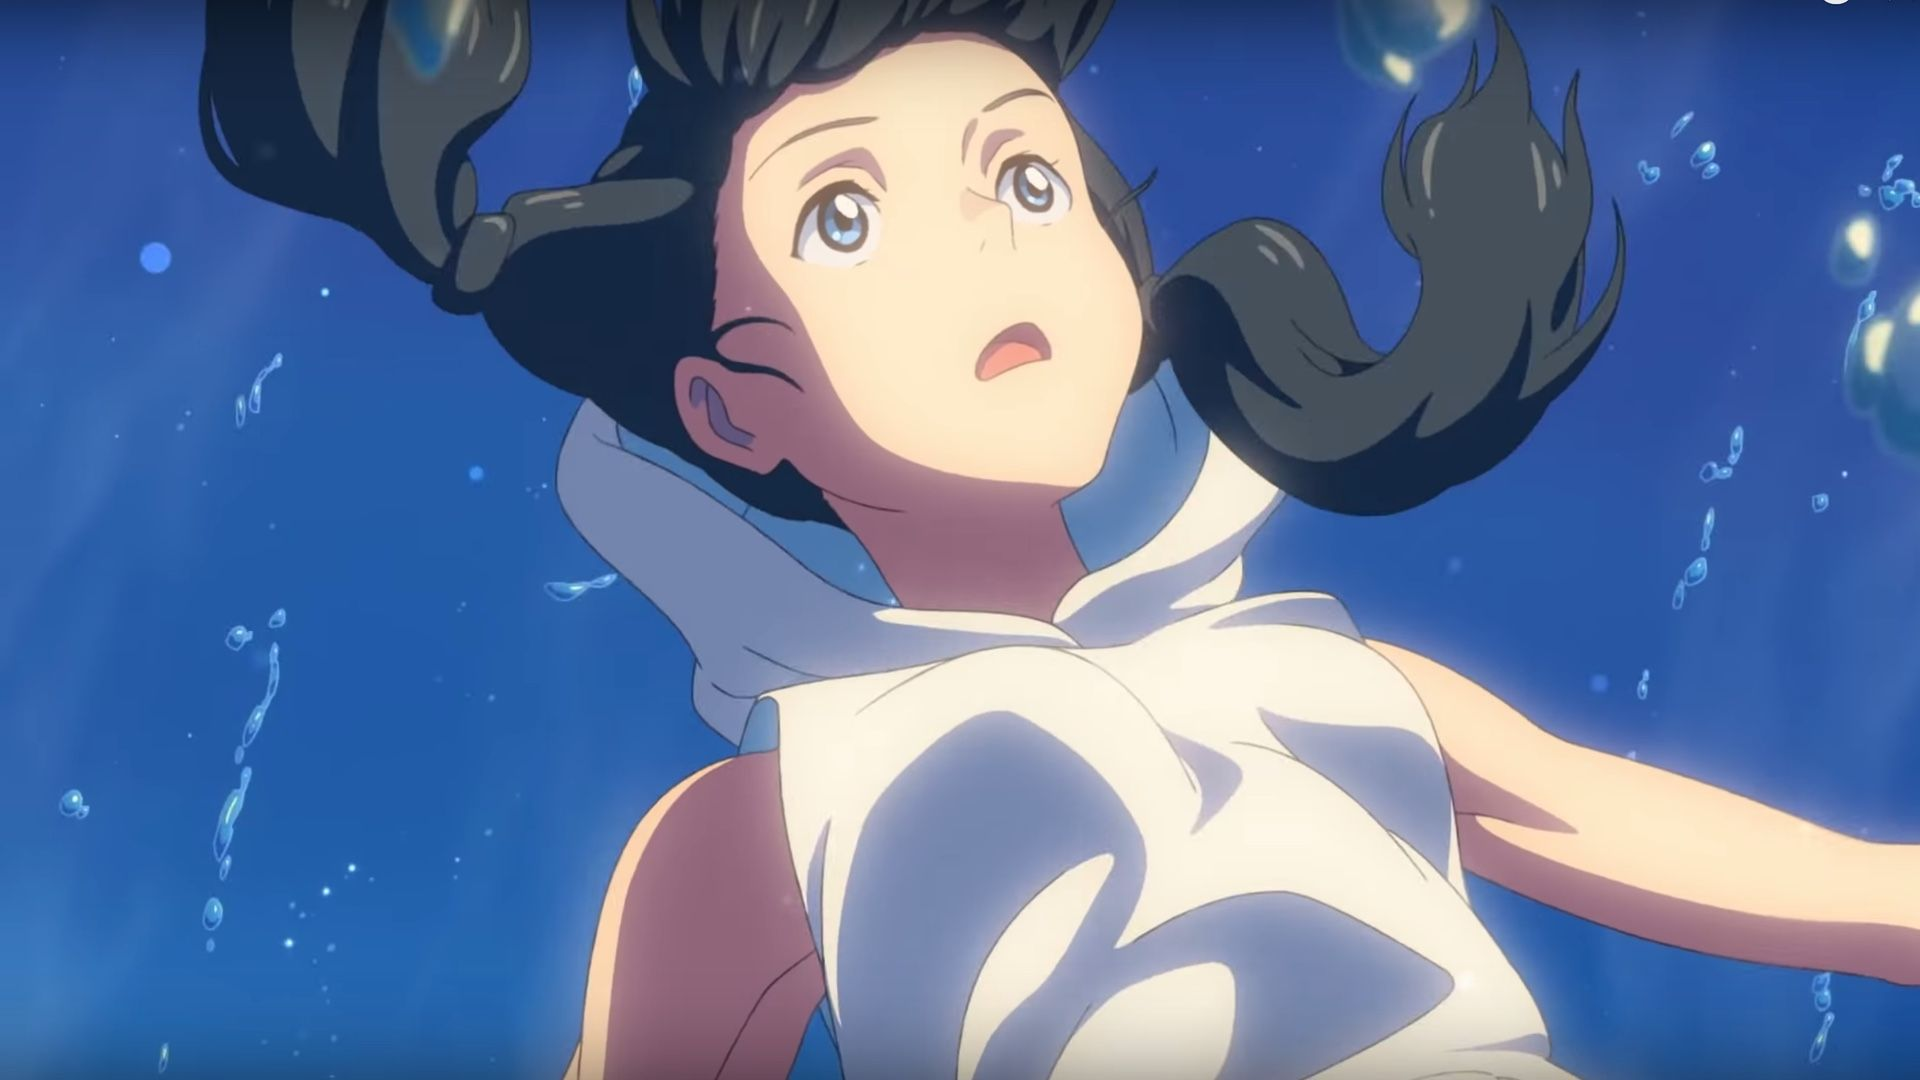 First Teaser Trailer For The Anime Film WEATHERING WITH